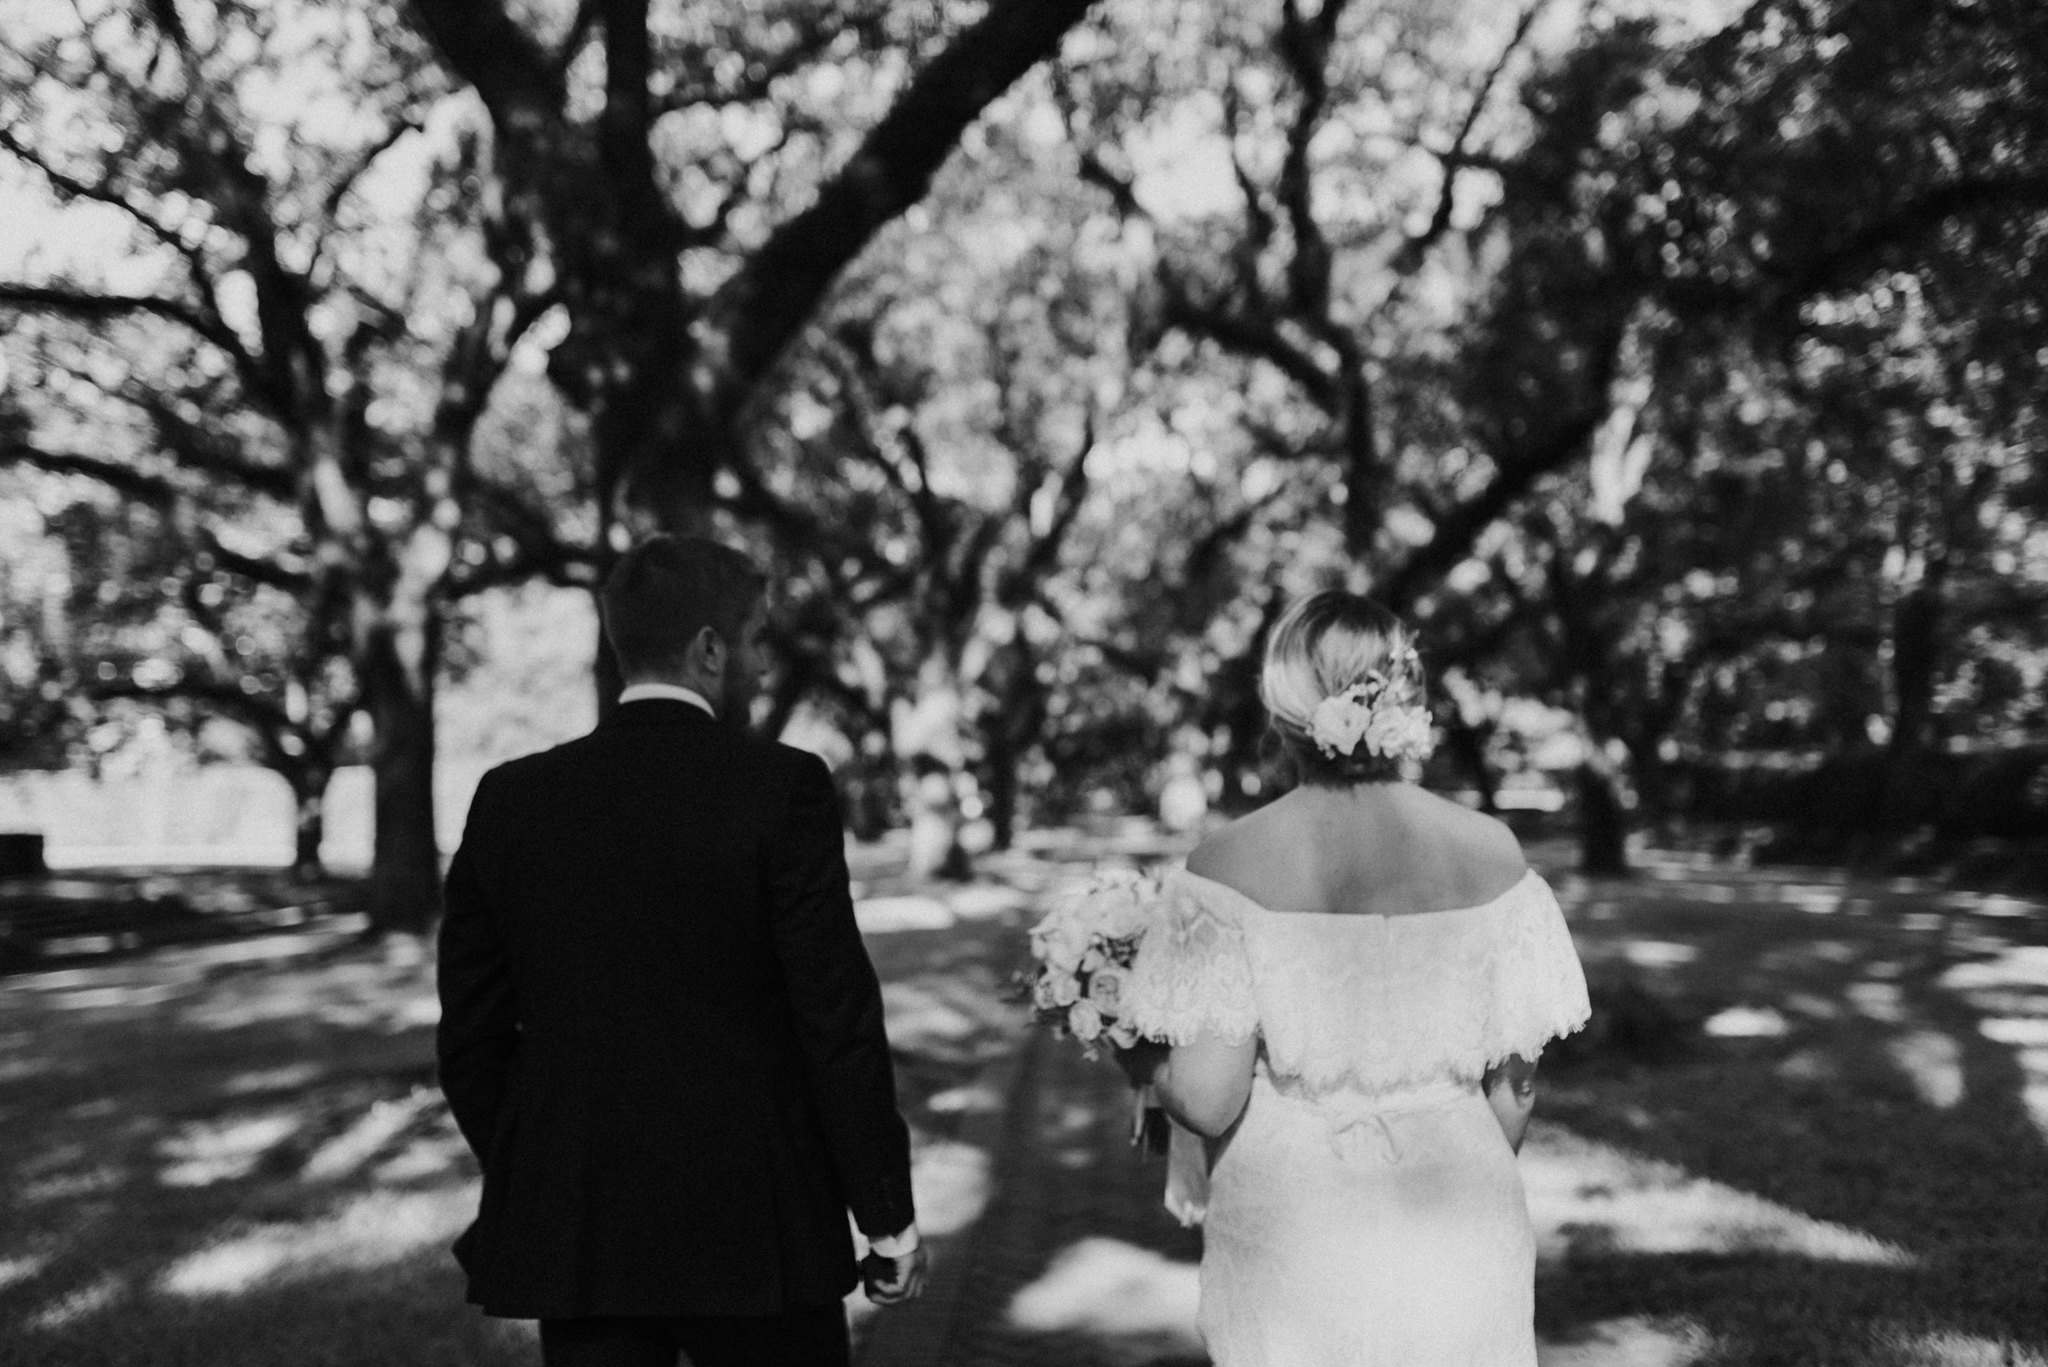 Houston Wedding Photographer-North Blvd Intimate Elopement- Houston Wedding Photographer -Kristen Giles Photography-1.jpg